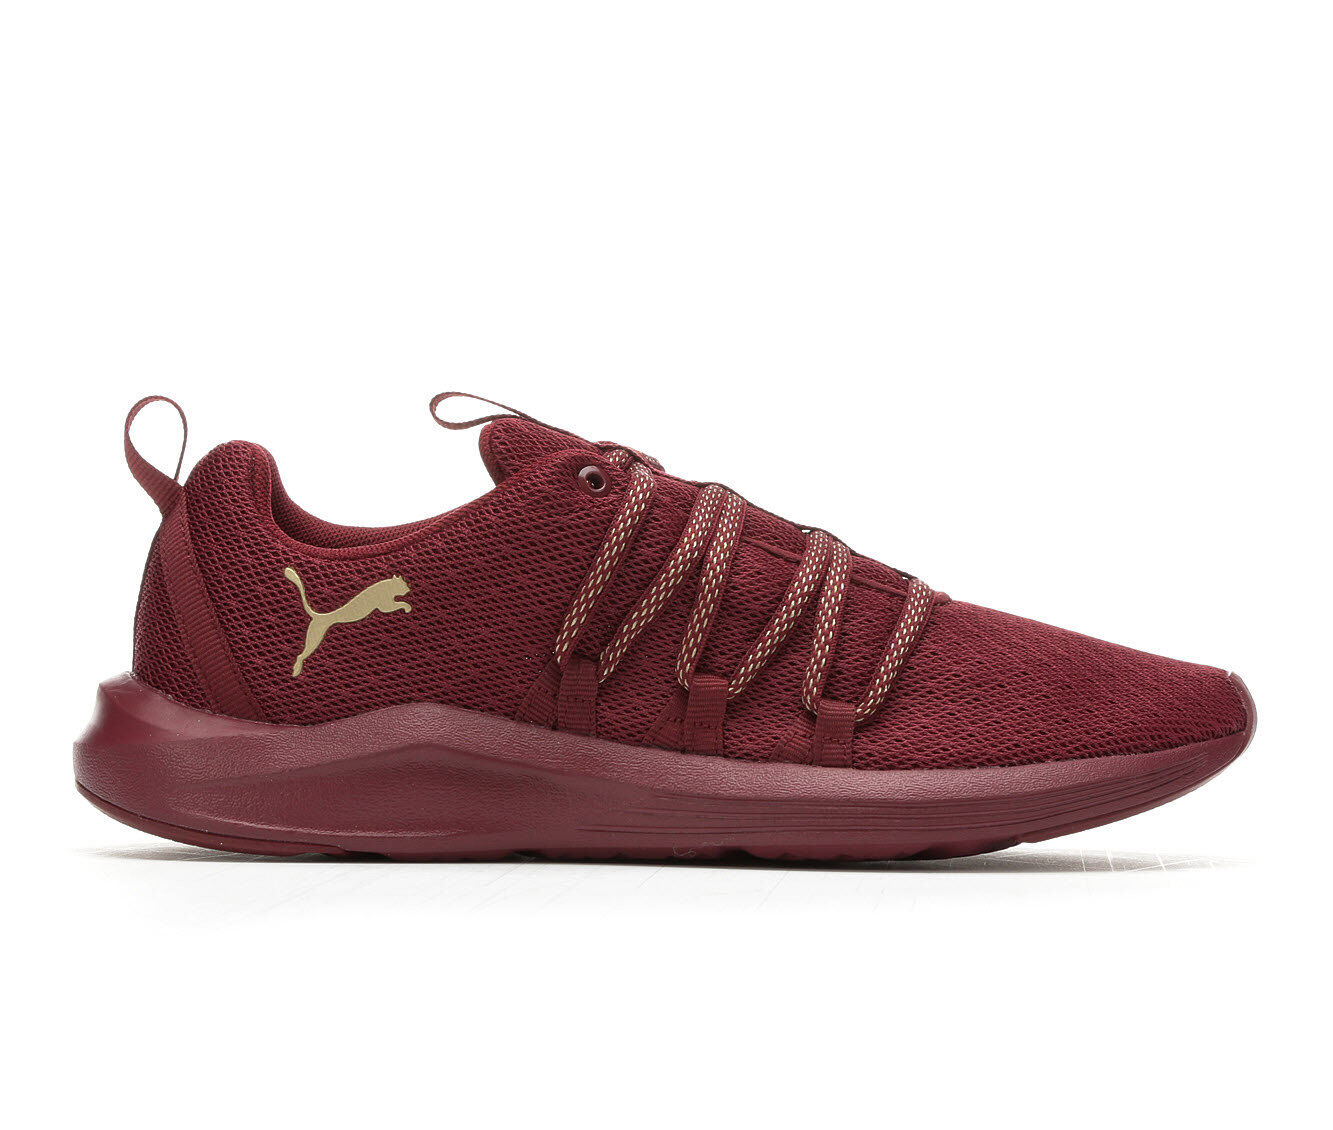 Women's Puma Prowl Sneakers Burgundy/Gold